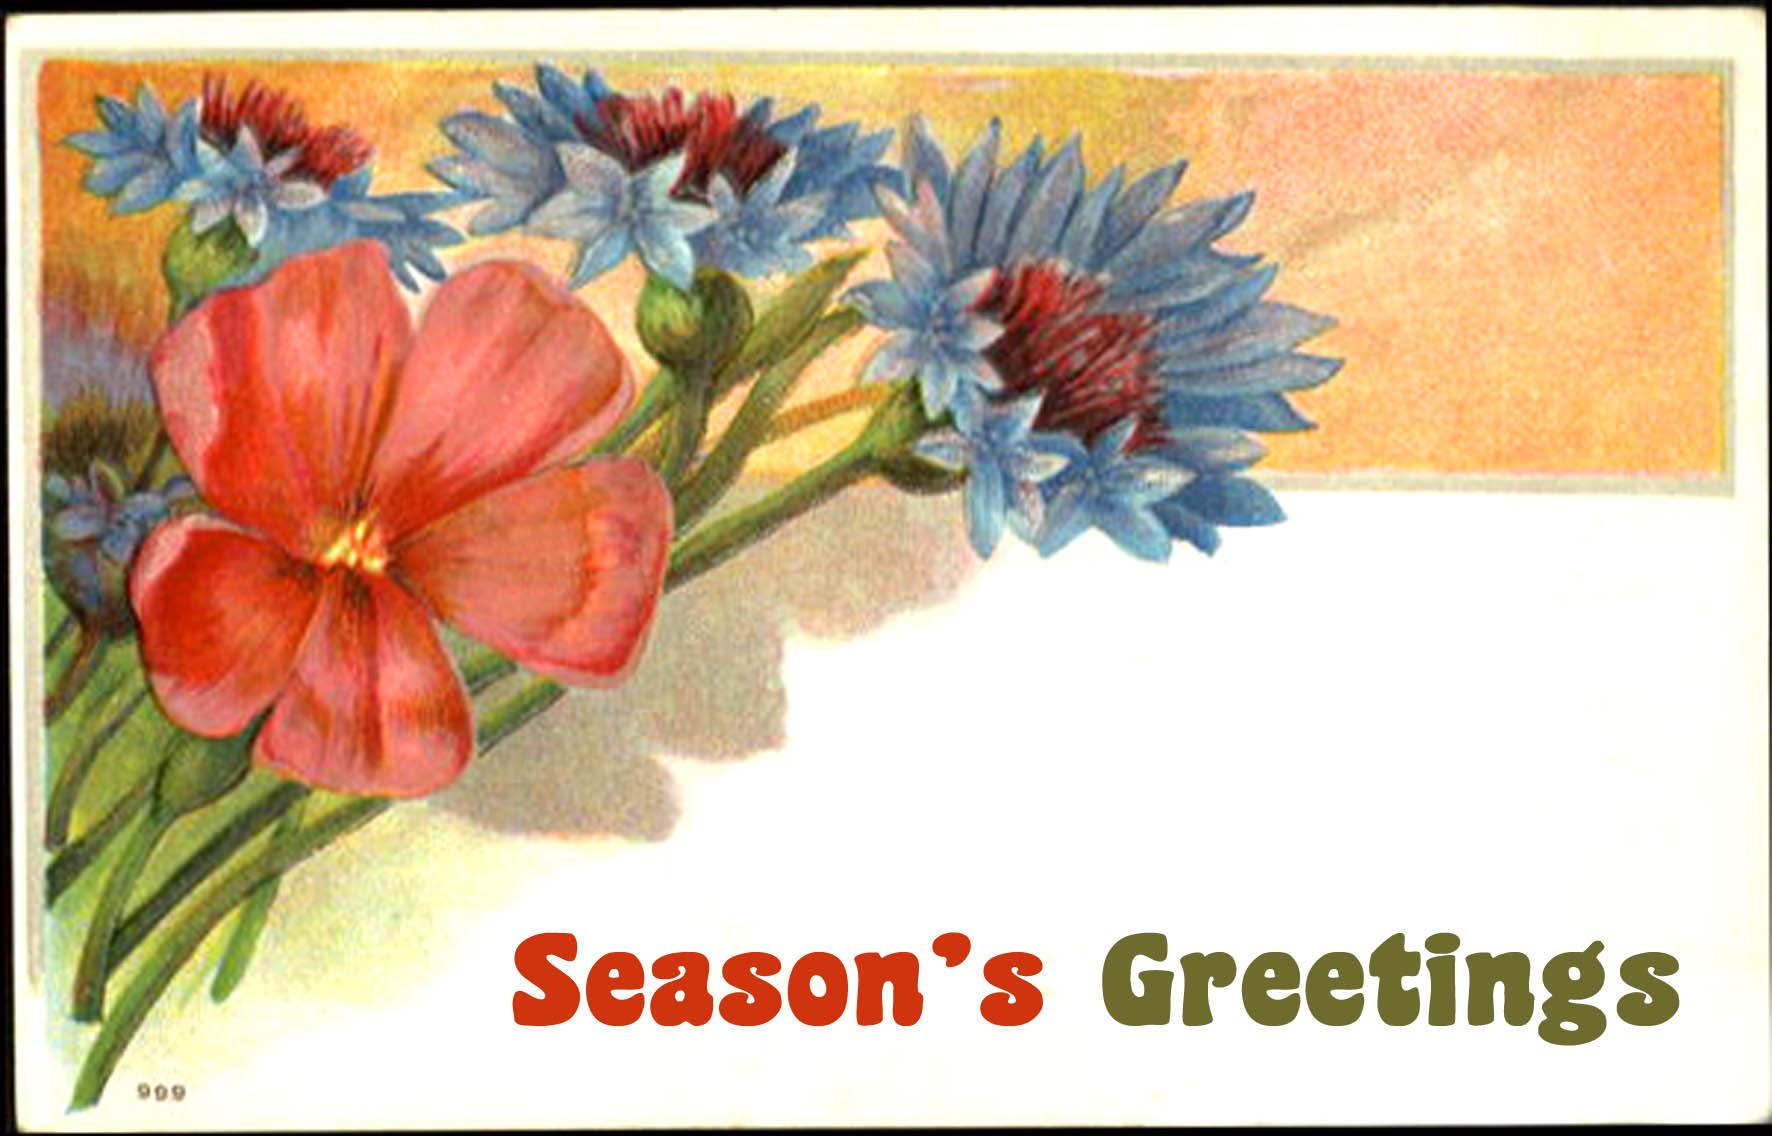 Free printable christmas cards from antique victorian to modern vintage christmas greeting card drawing of flowers text seasons greetings m4hsunfo